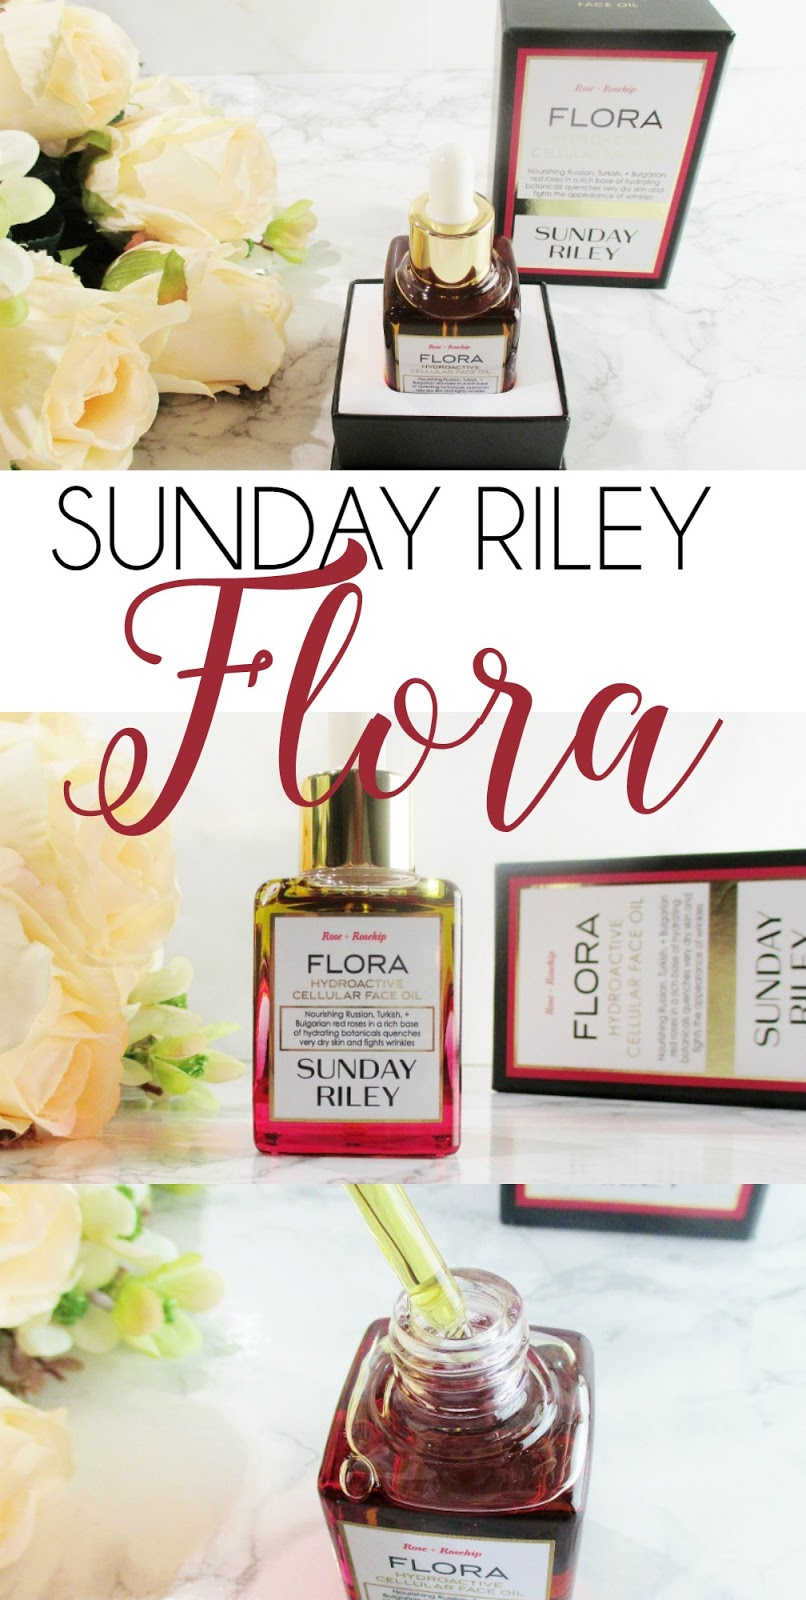 sunday-riley-flora-hydroactive-cellular-face-oil-review